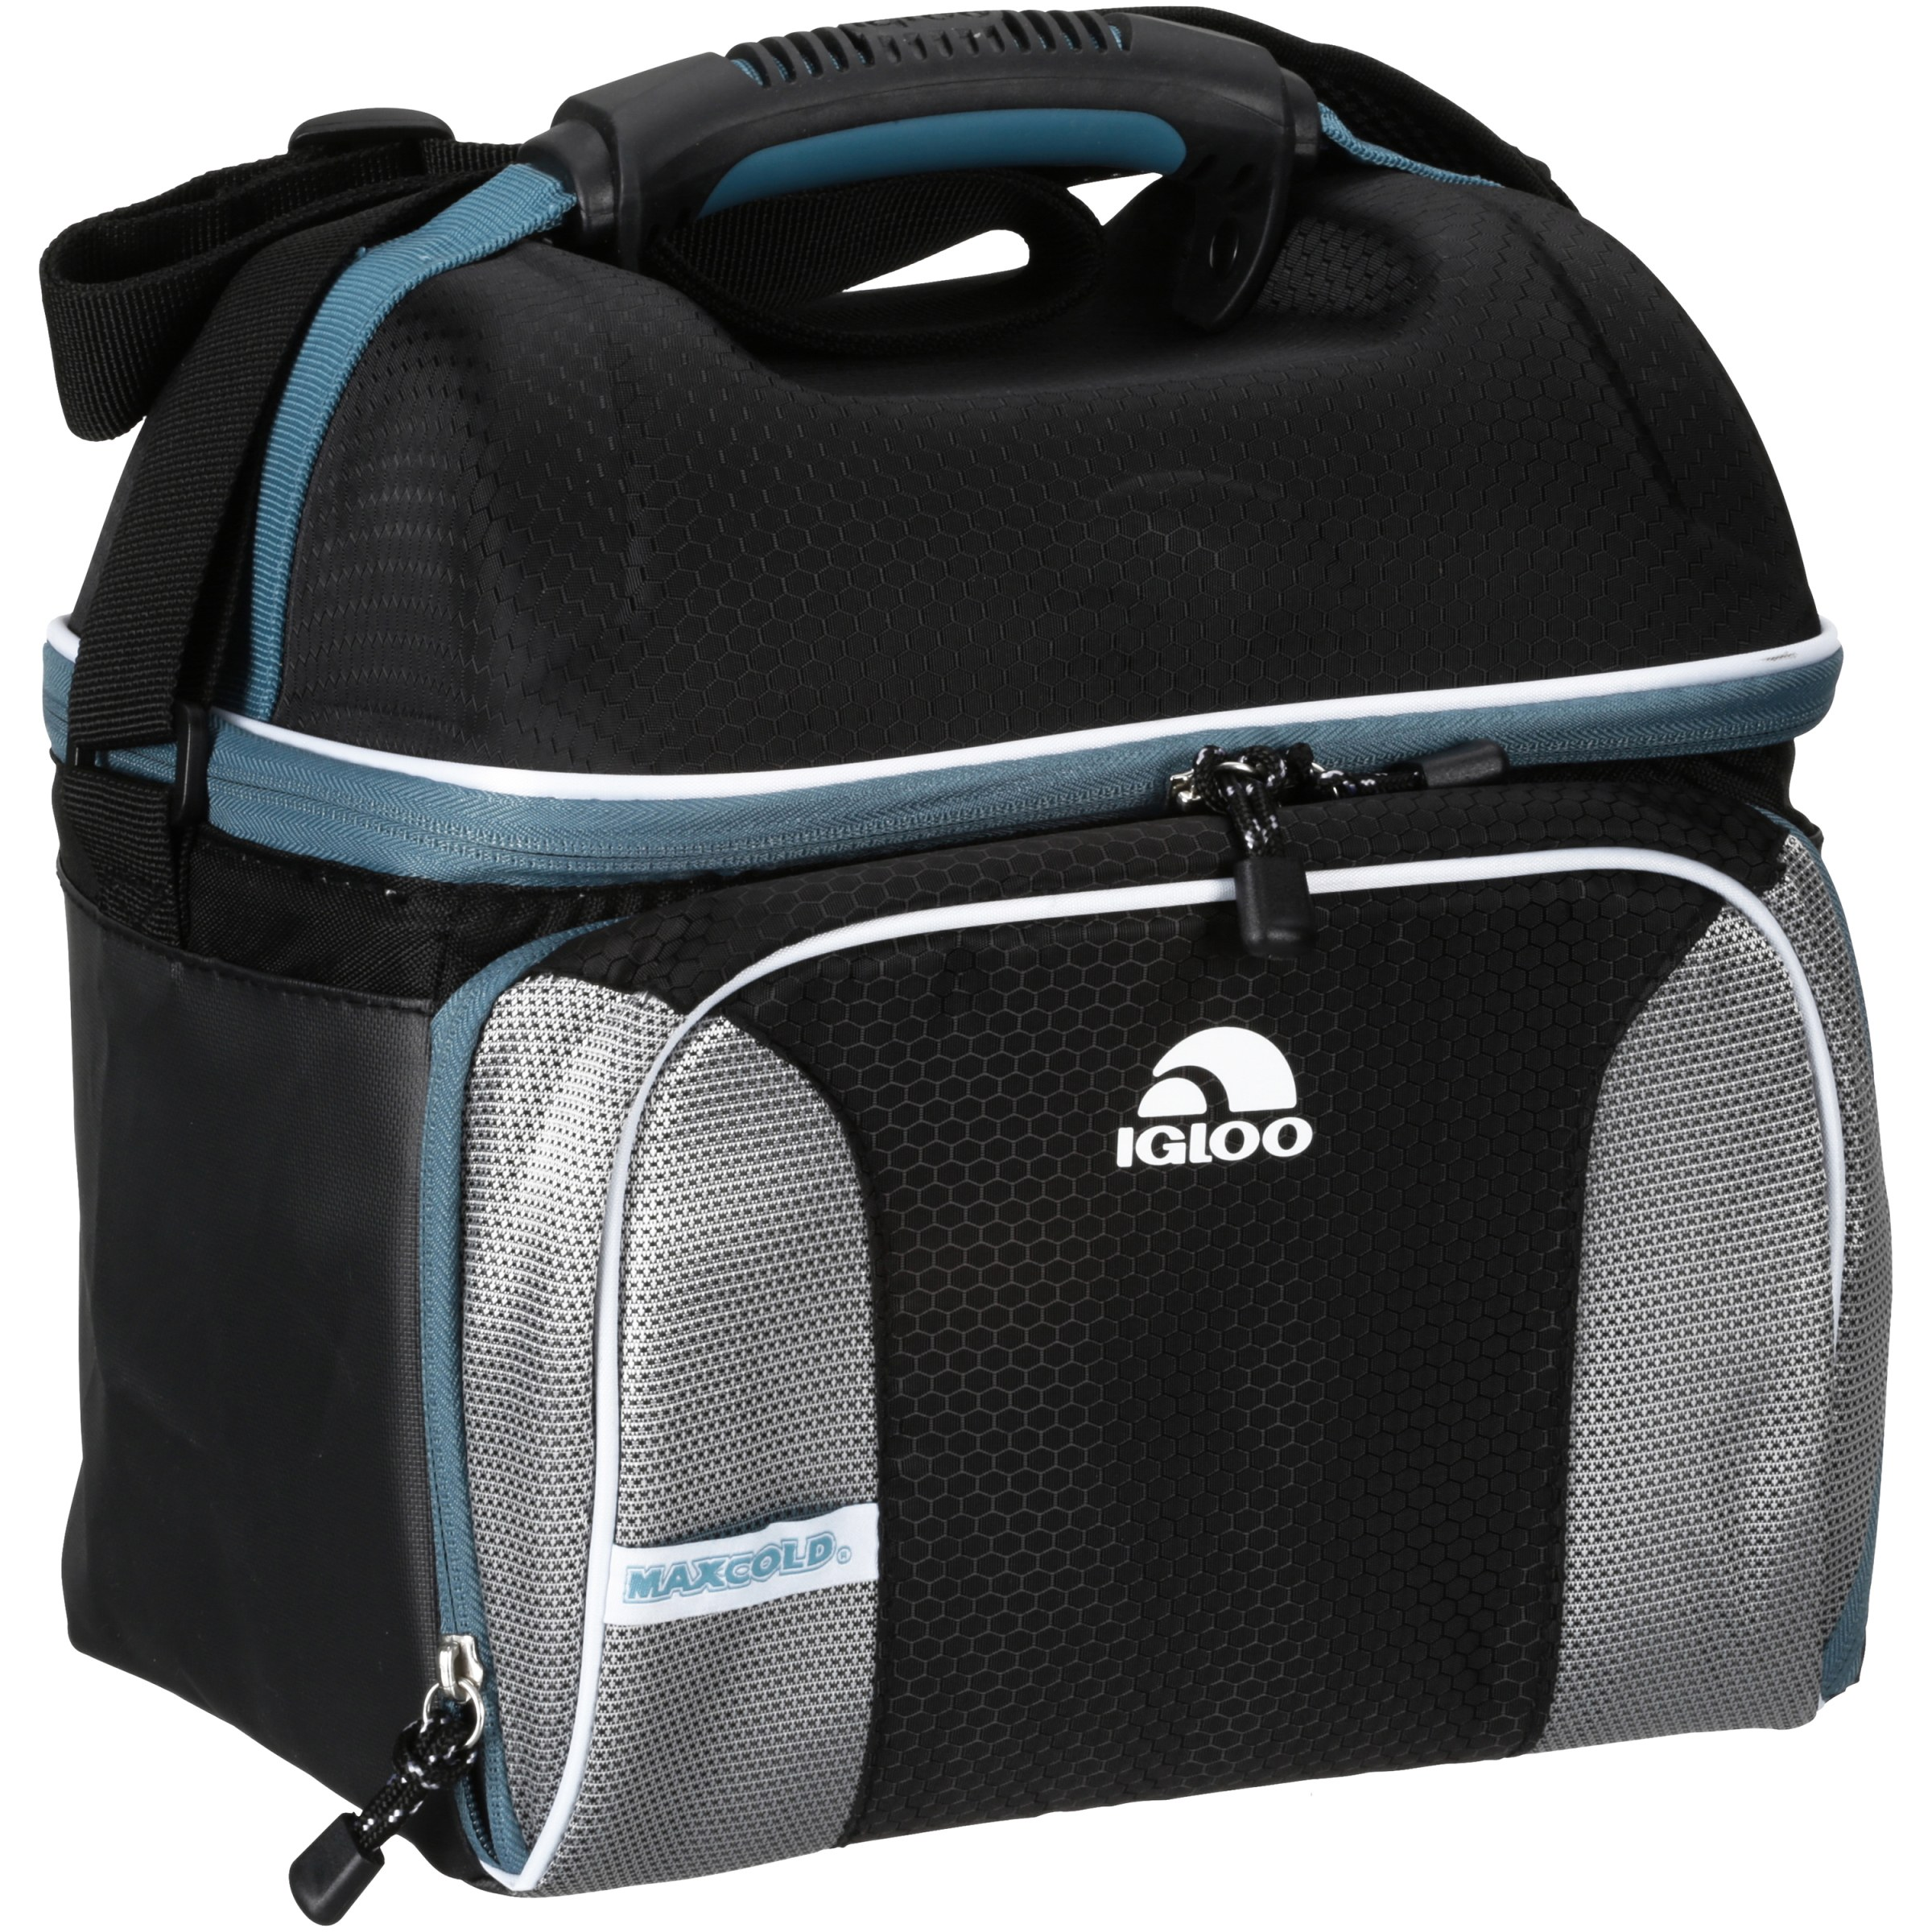 Igloo Playmate Hardtop Gripper Maxcold Cooler Bag by Igloo Products Corp.